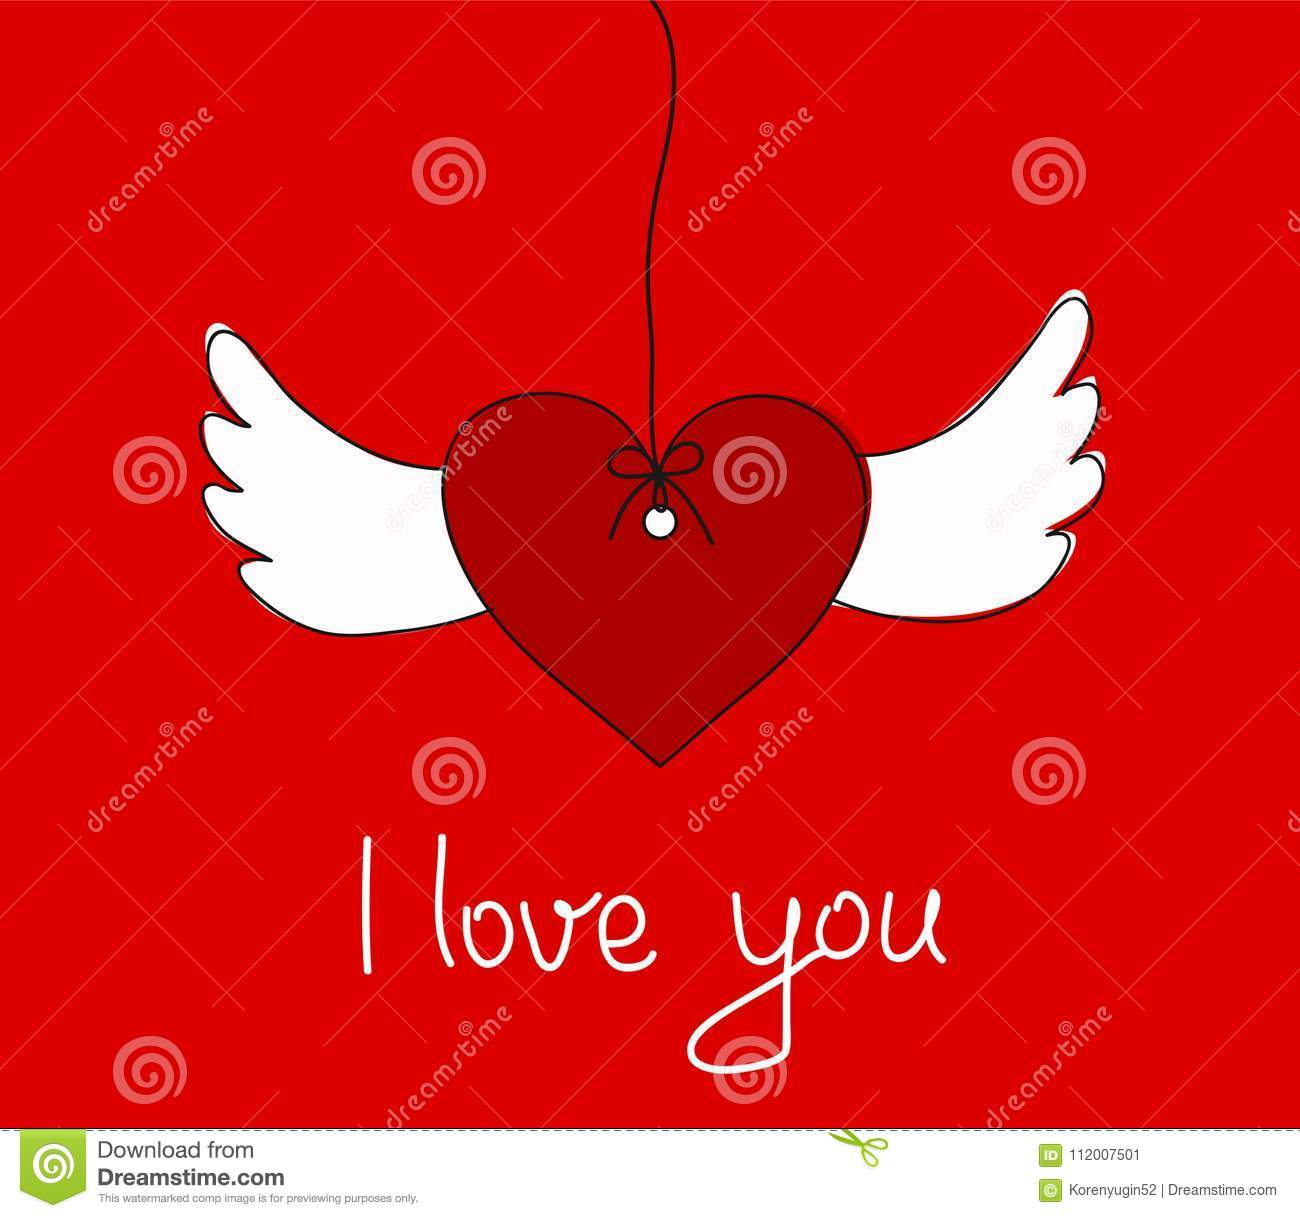 I Love You Greeting Card With Hanging Heart Wings Stock Vecto